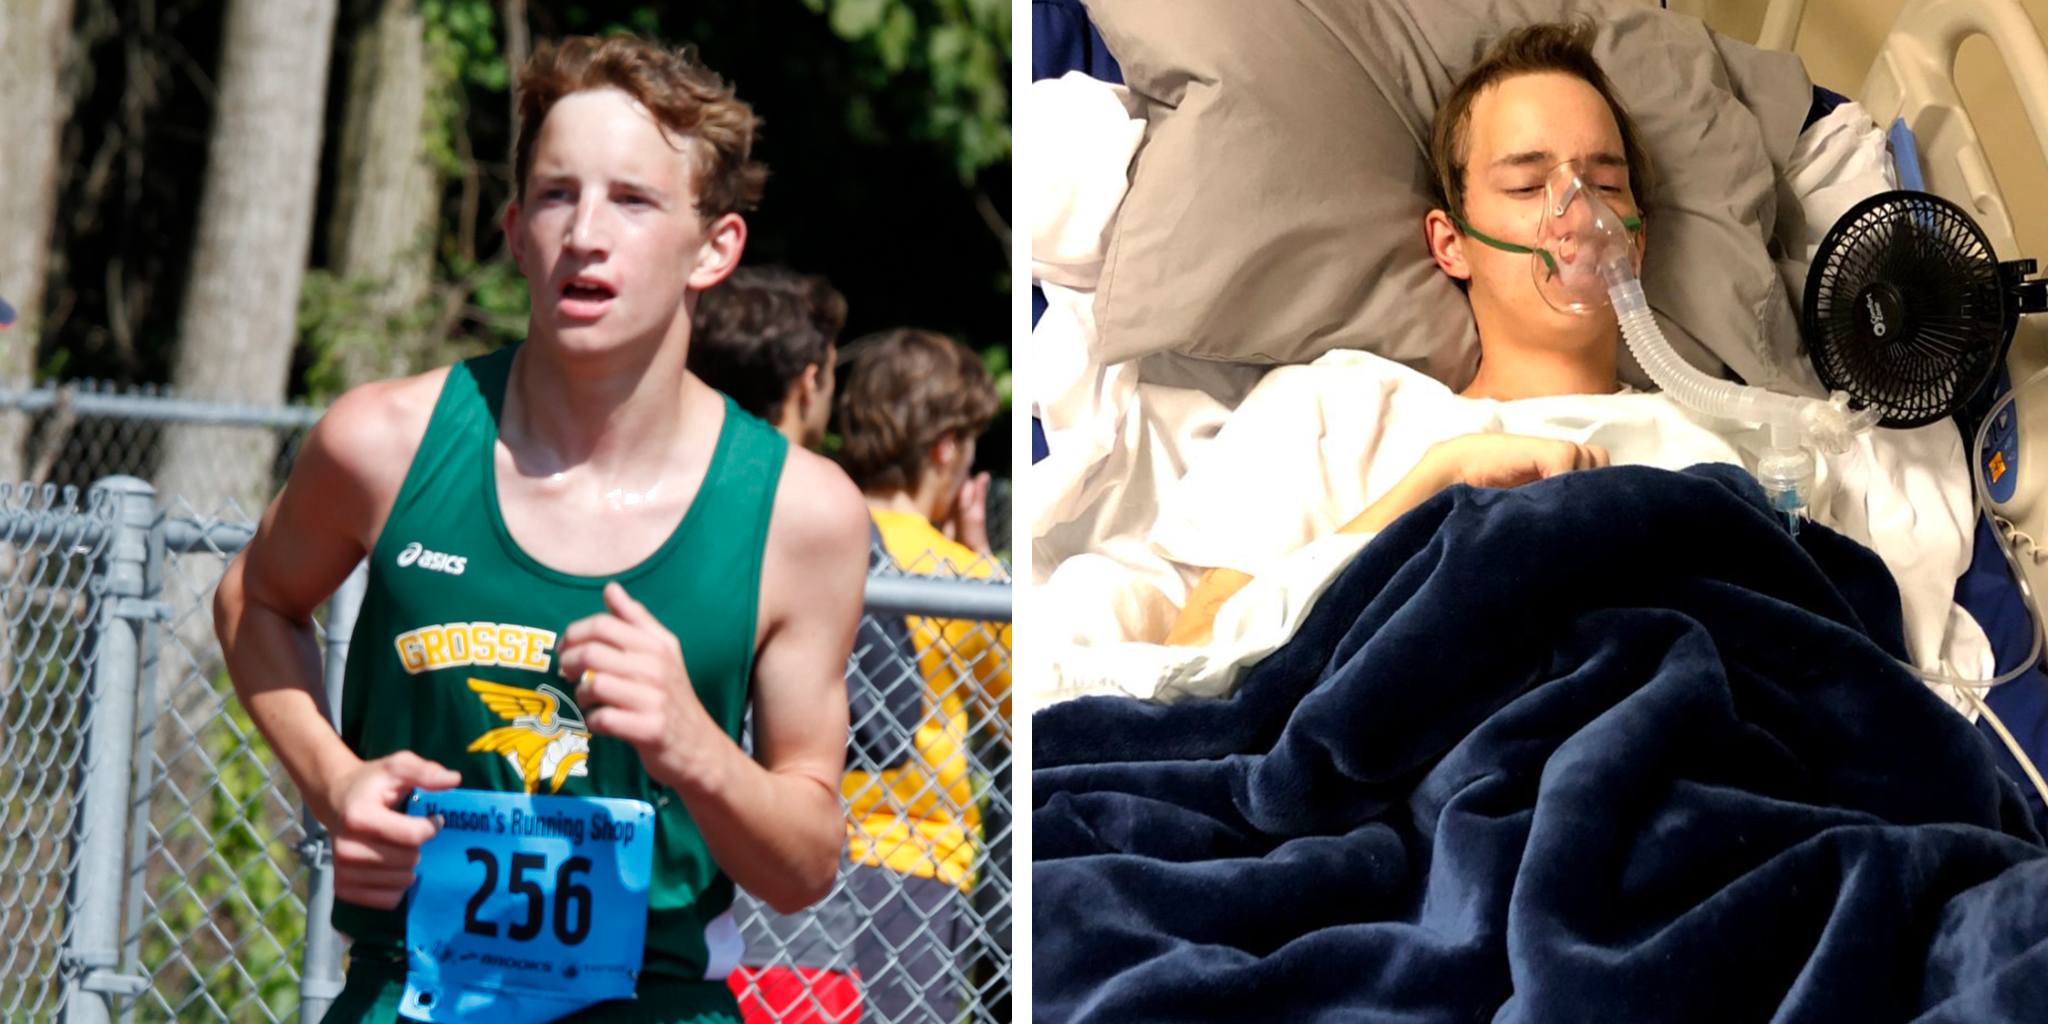 Daniel Ament, before and during his illness.